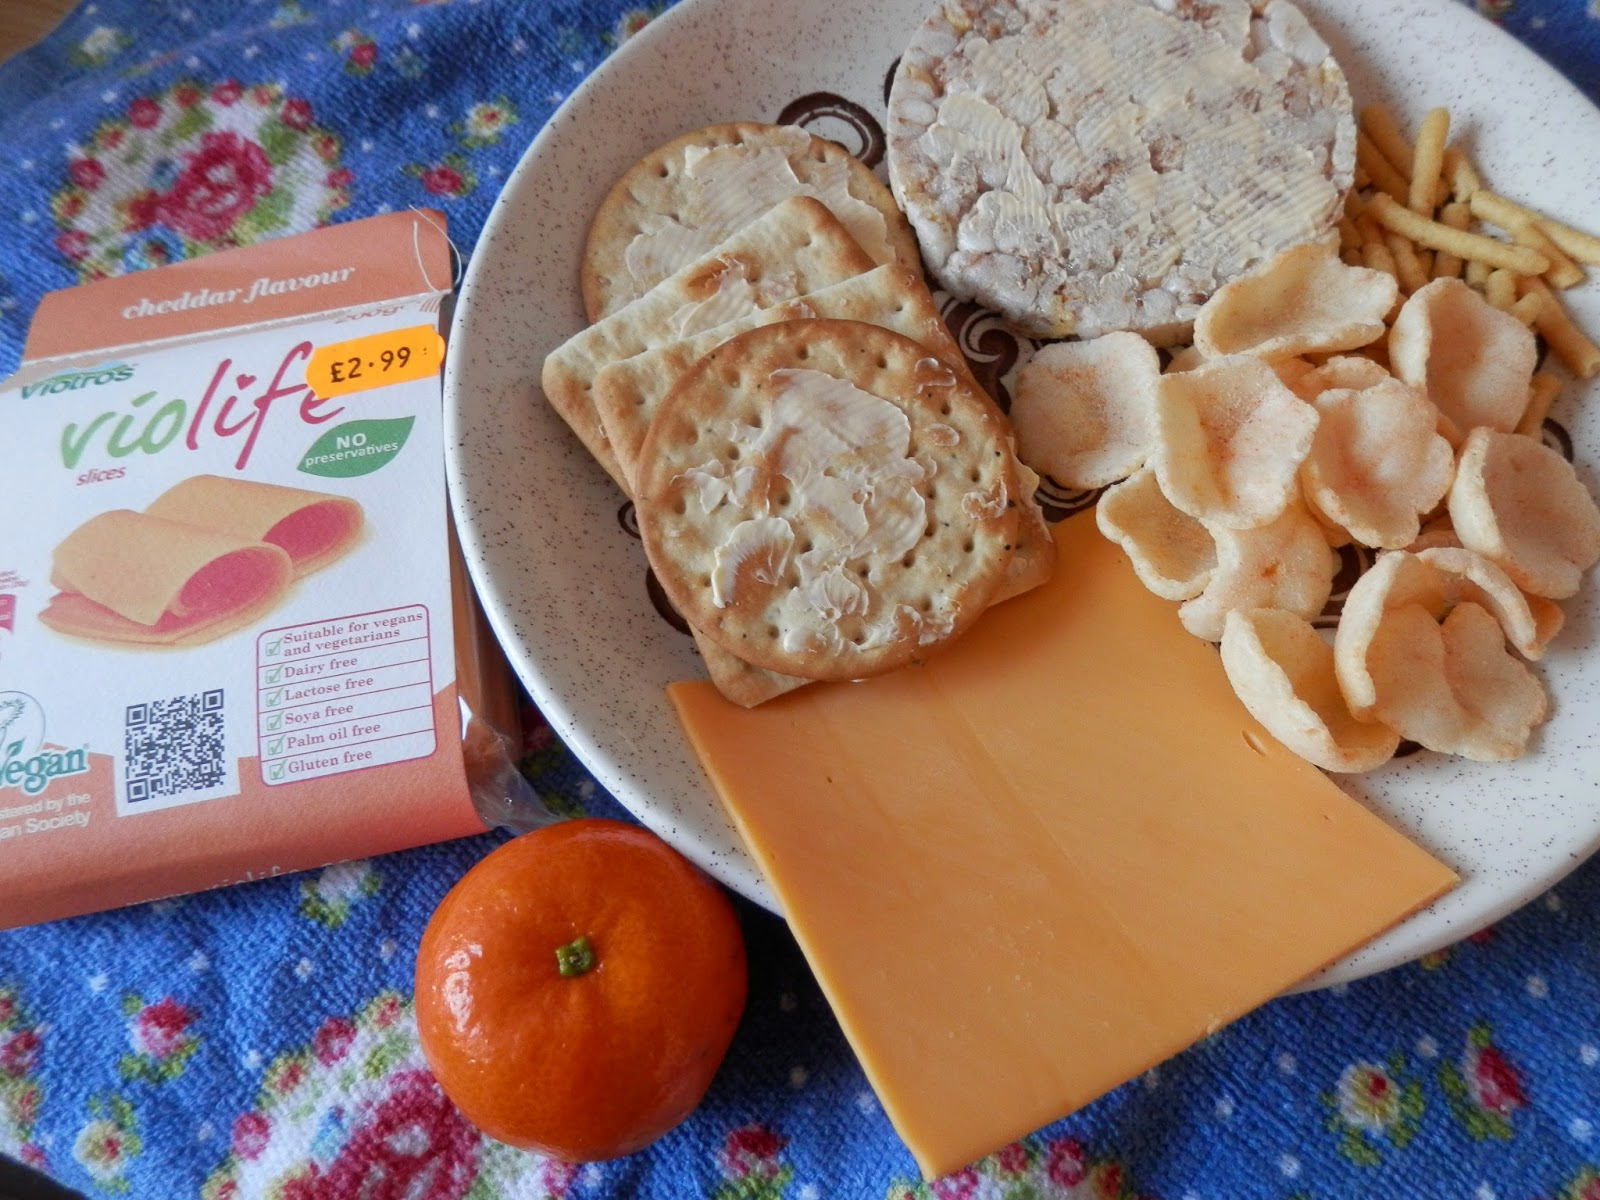 Vegan Violife cheese and crackers  secondhandsusie.blogspot.co.uk